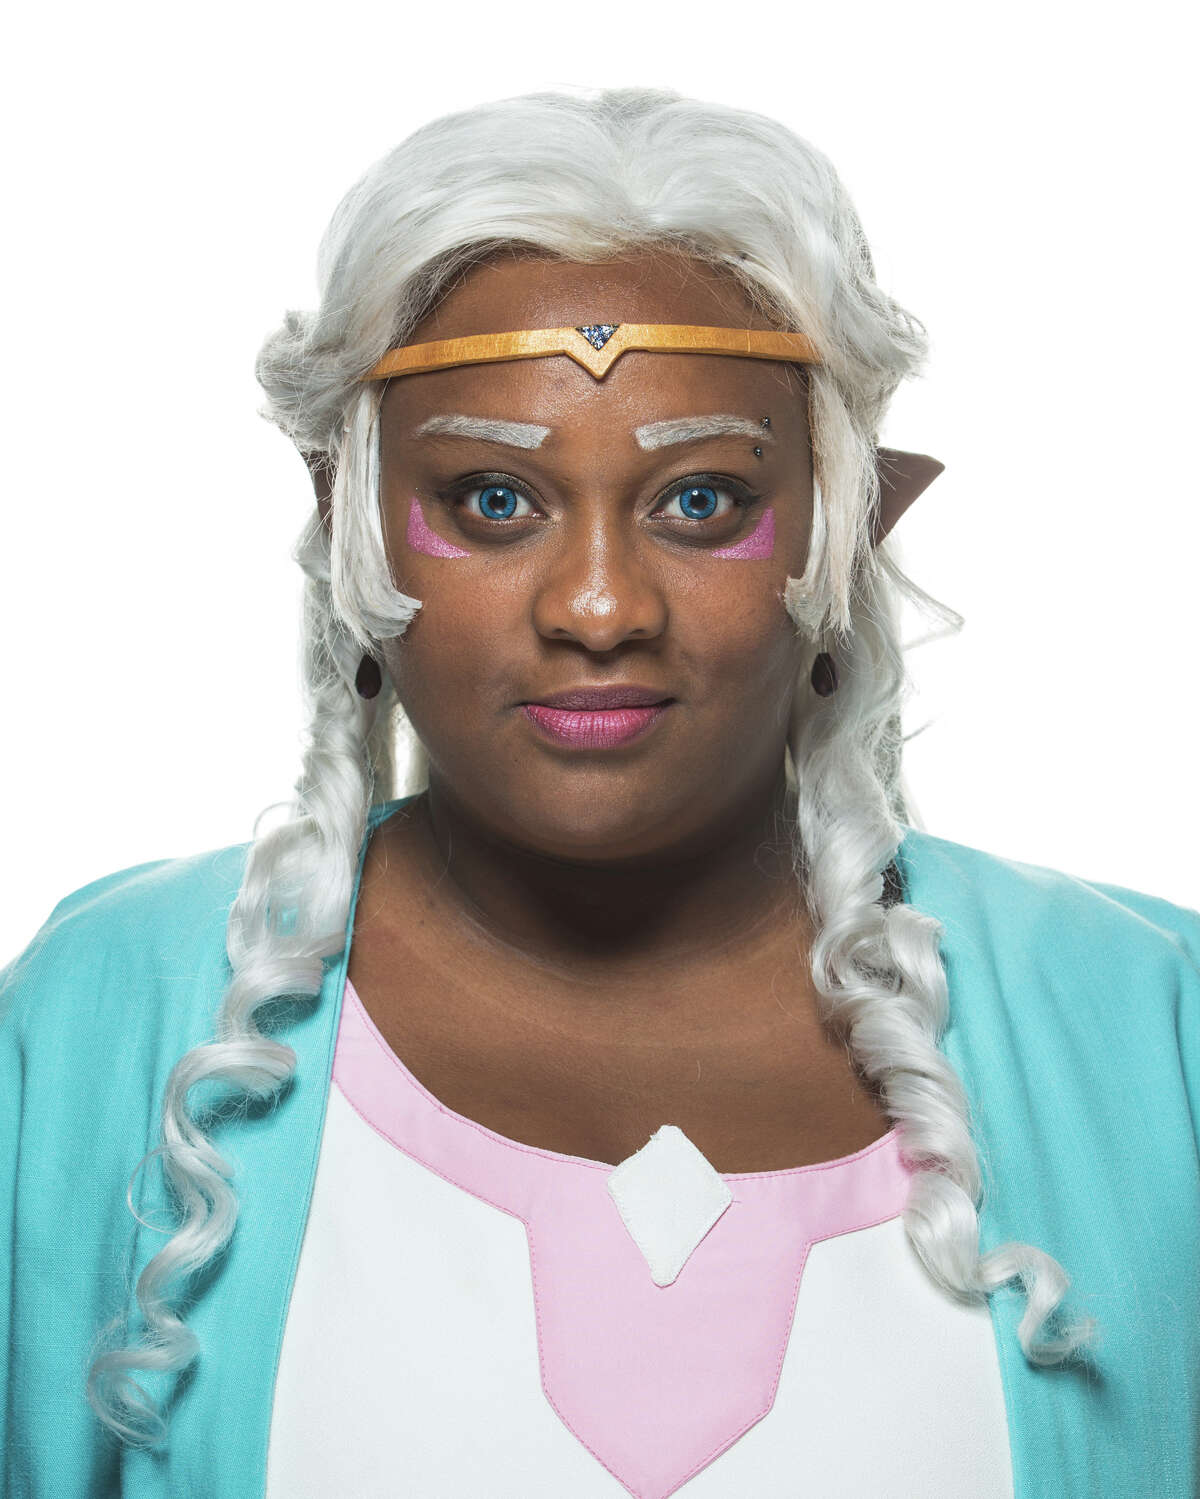 Jamila Clarke poses for a portrait as Allura from Voltron, a TV series.